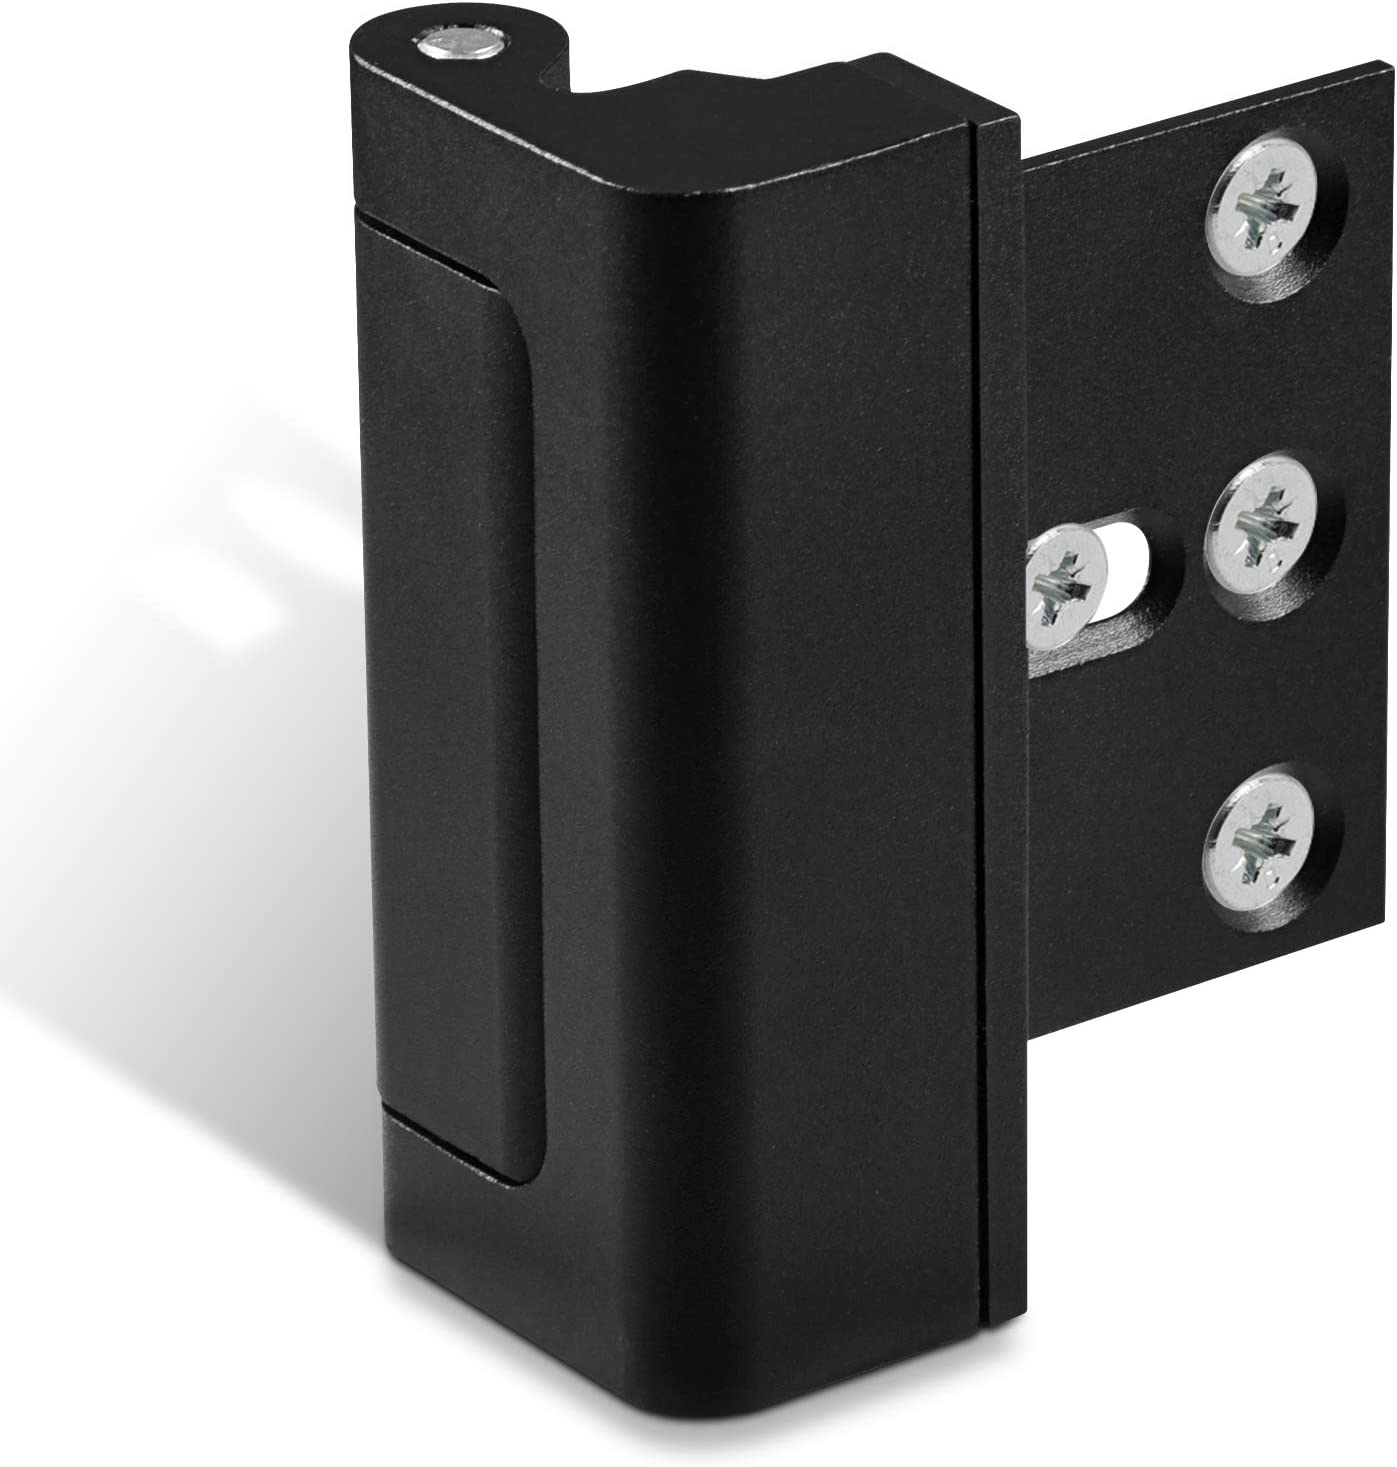 Lifechaser Home Security Door Reinforcement Lock Childproof Door Lock, Add High Security to Home Prevent Unauthorized Entry, Aluminum Construction Finish (1, Black)